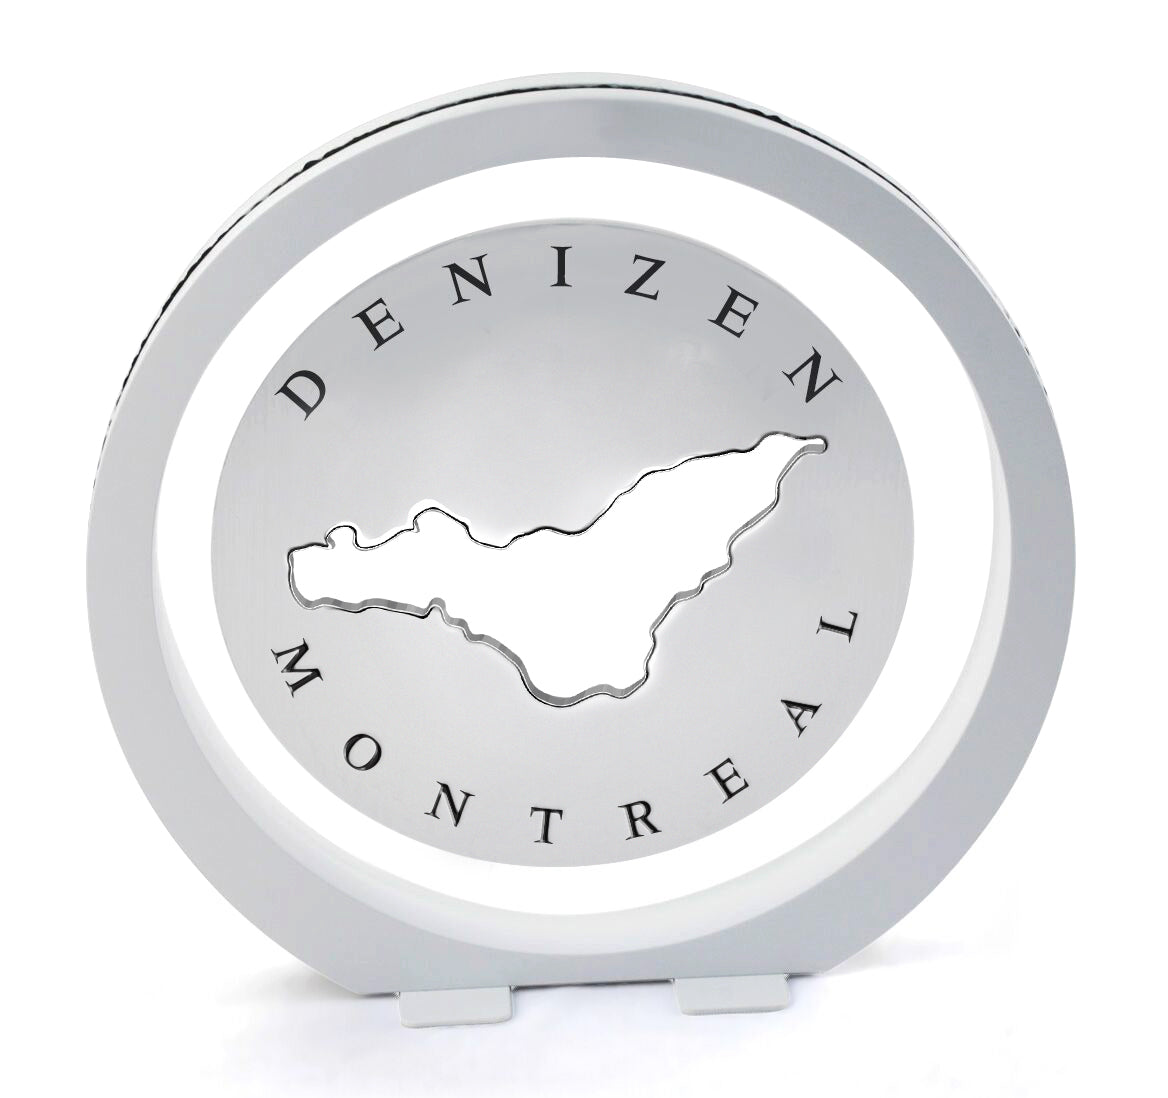 denizen disc display of montreal